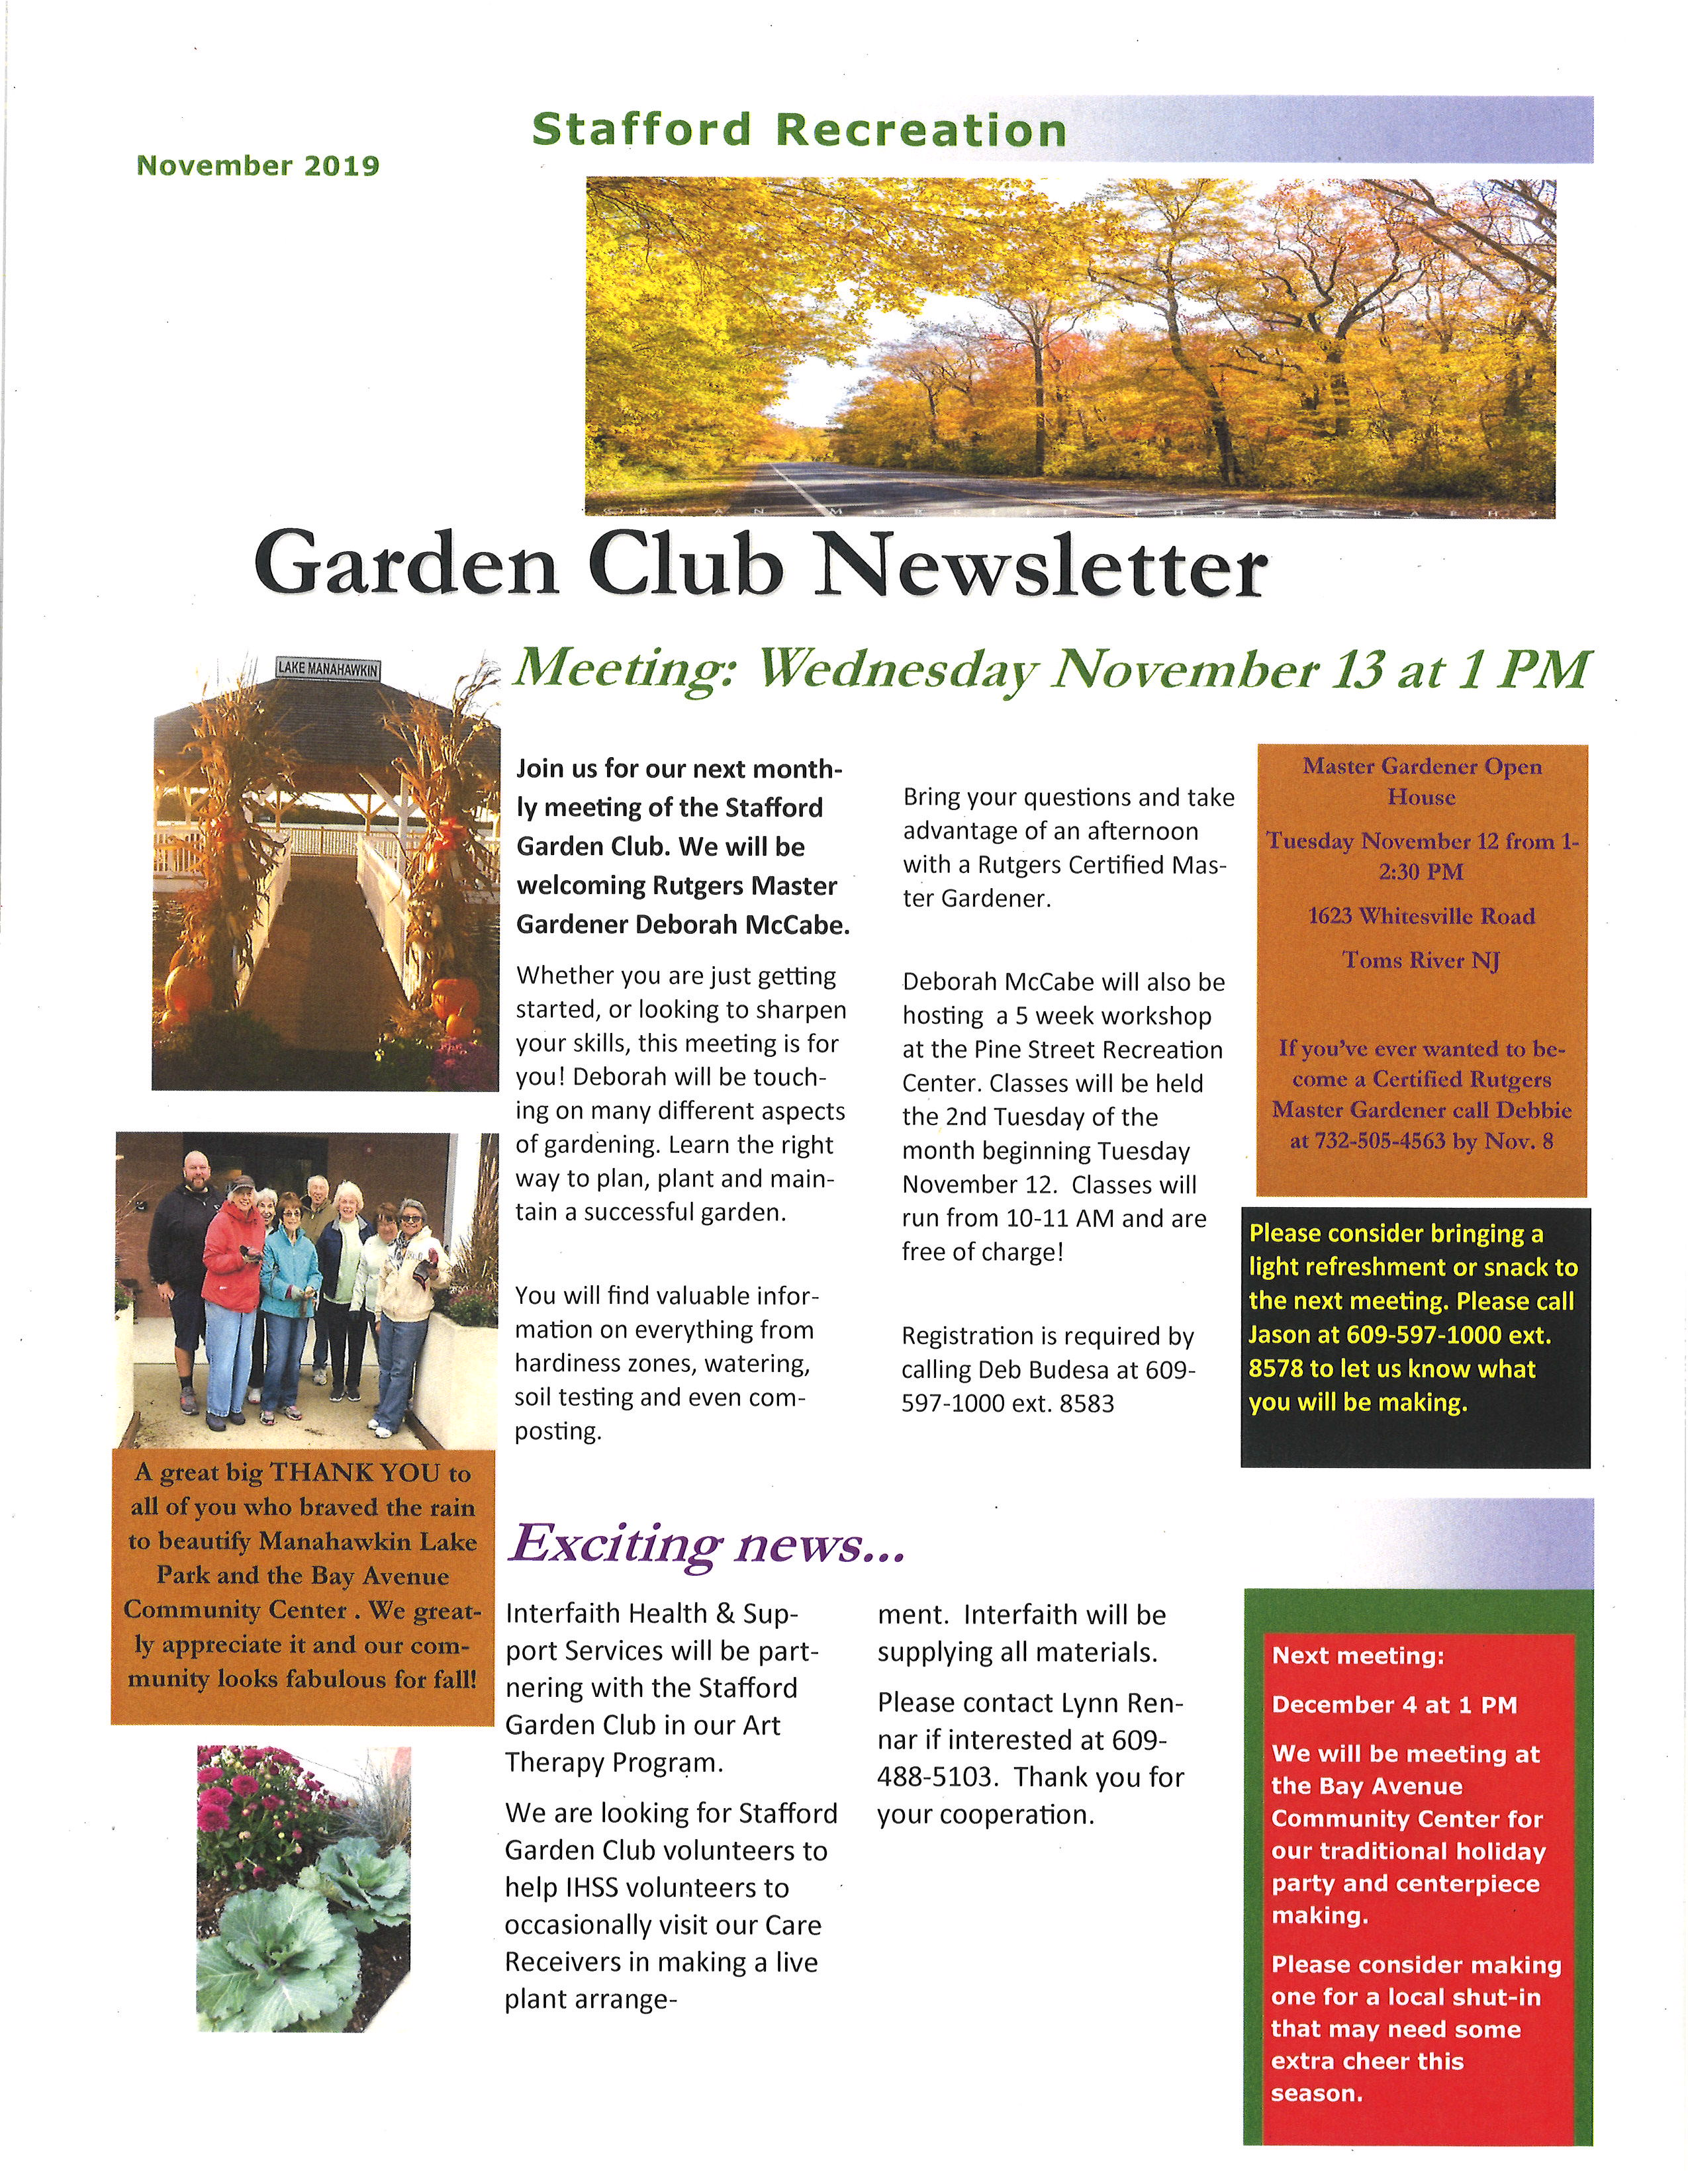 Garden Club Newsletter Nov 19